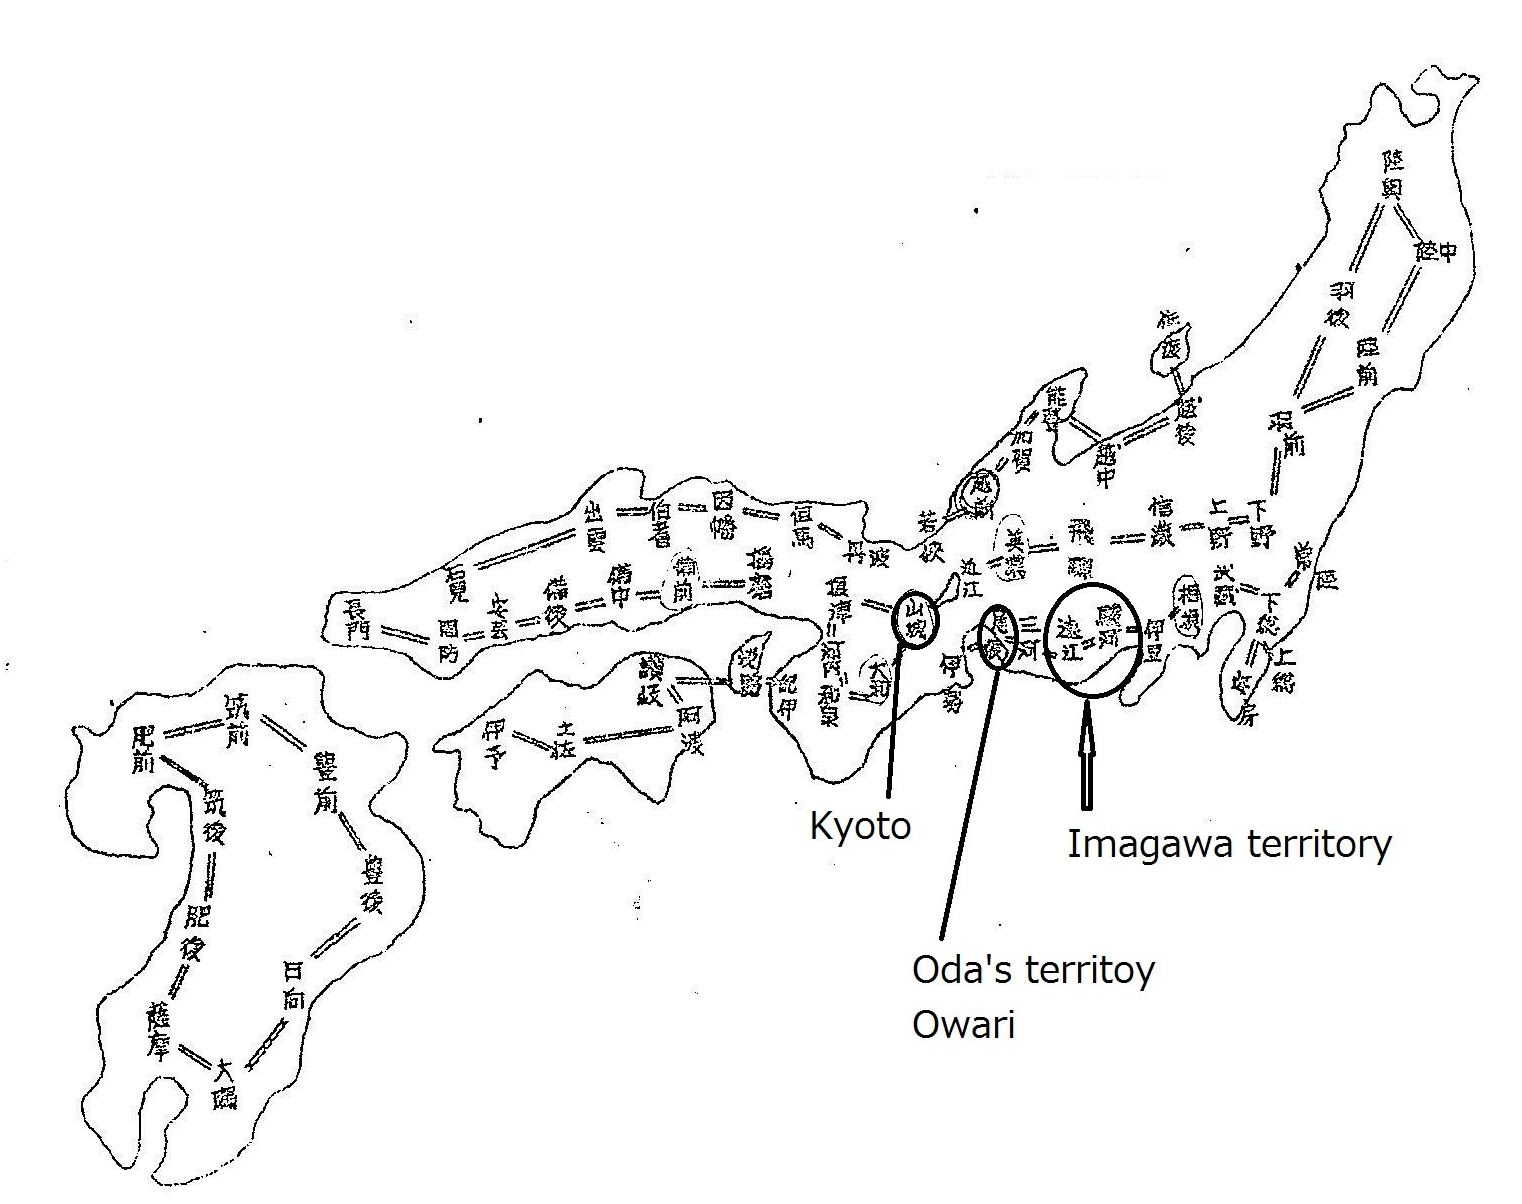 59-imagawa-and-oda-map.jpg